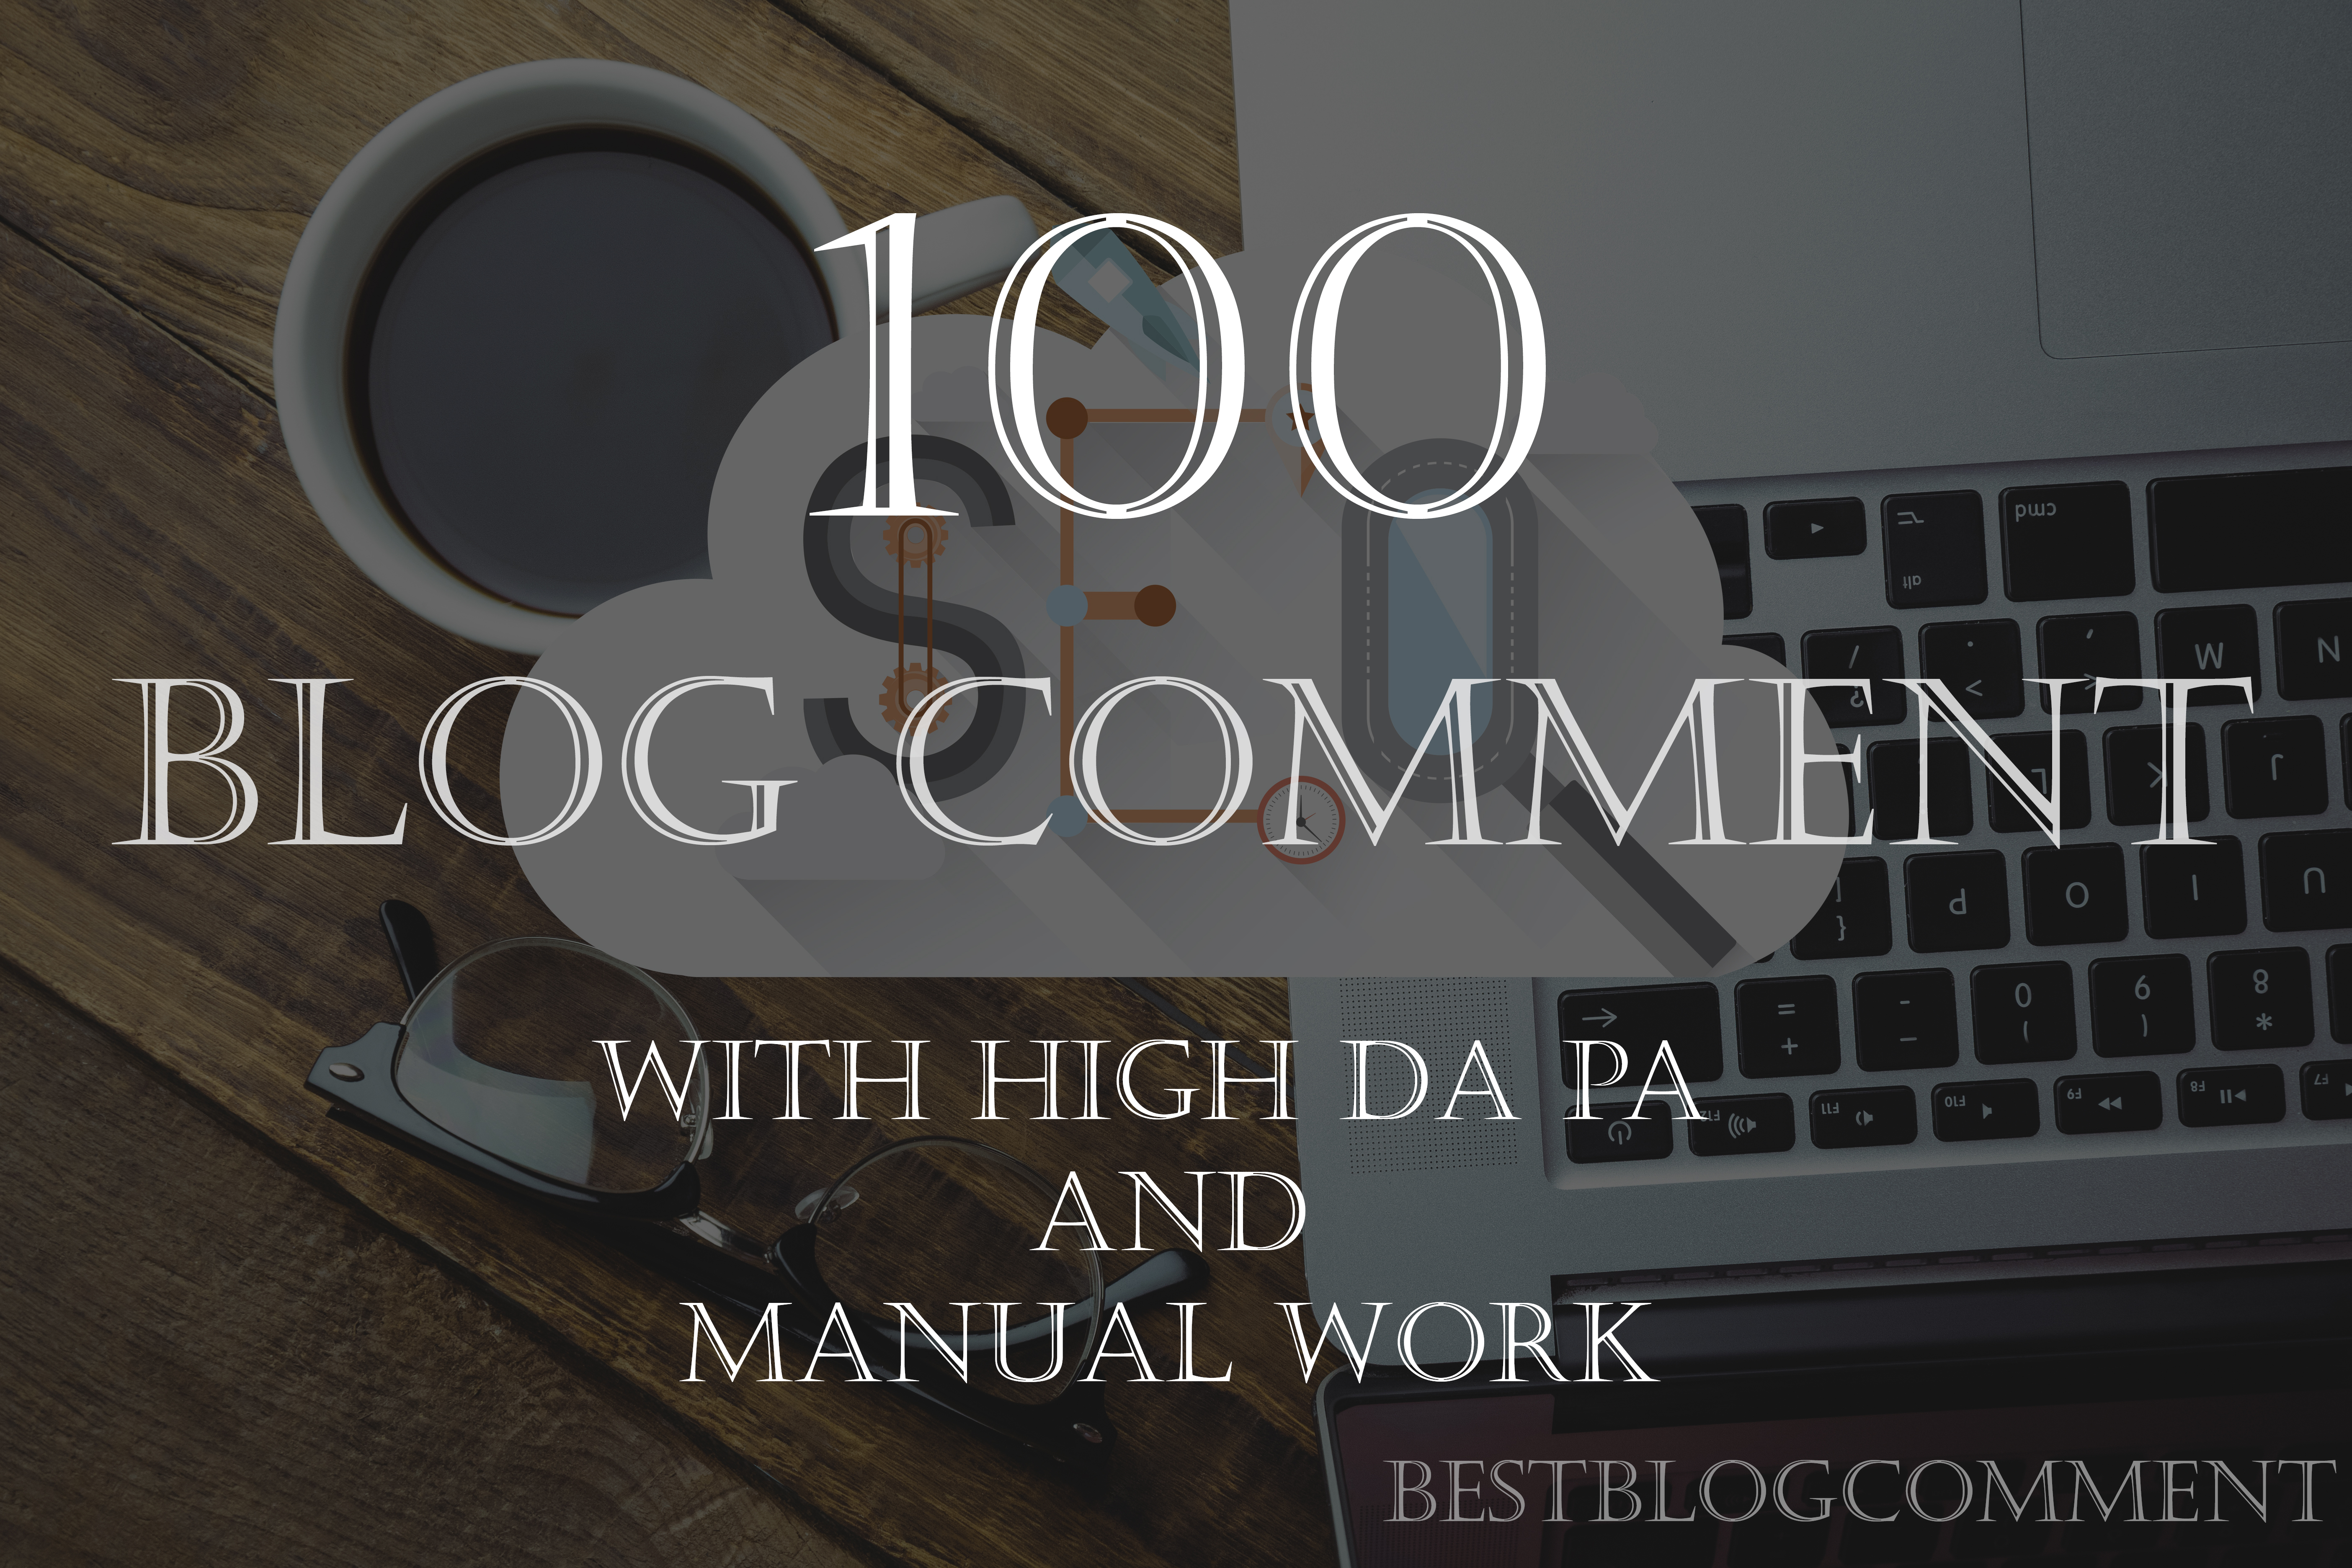 I will provide 100 unique manual blog comment backlink with high da pa